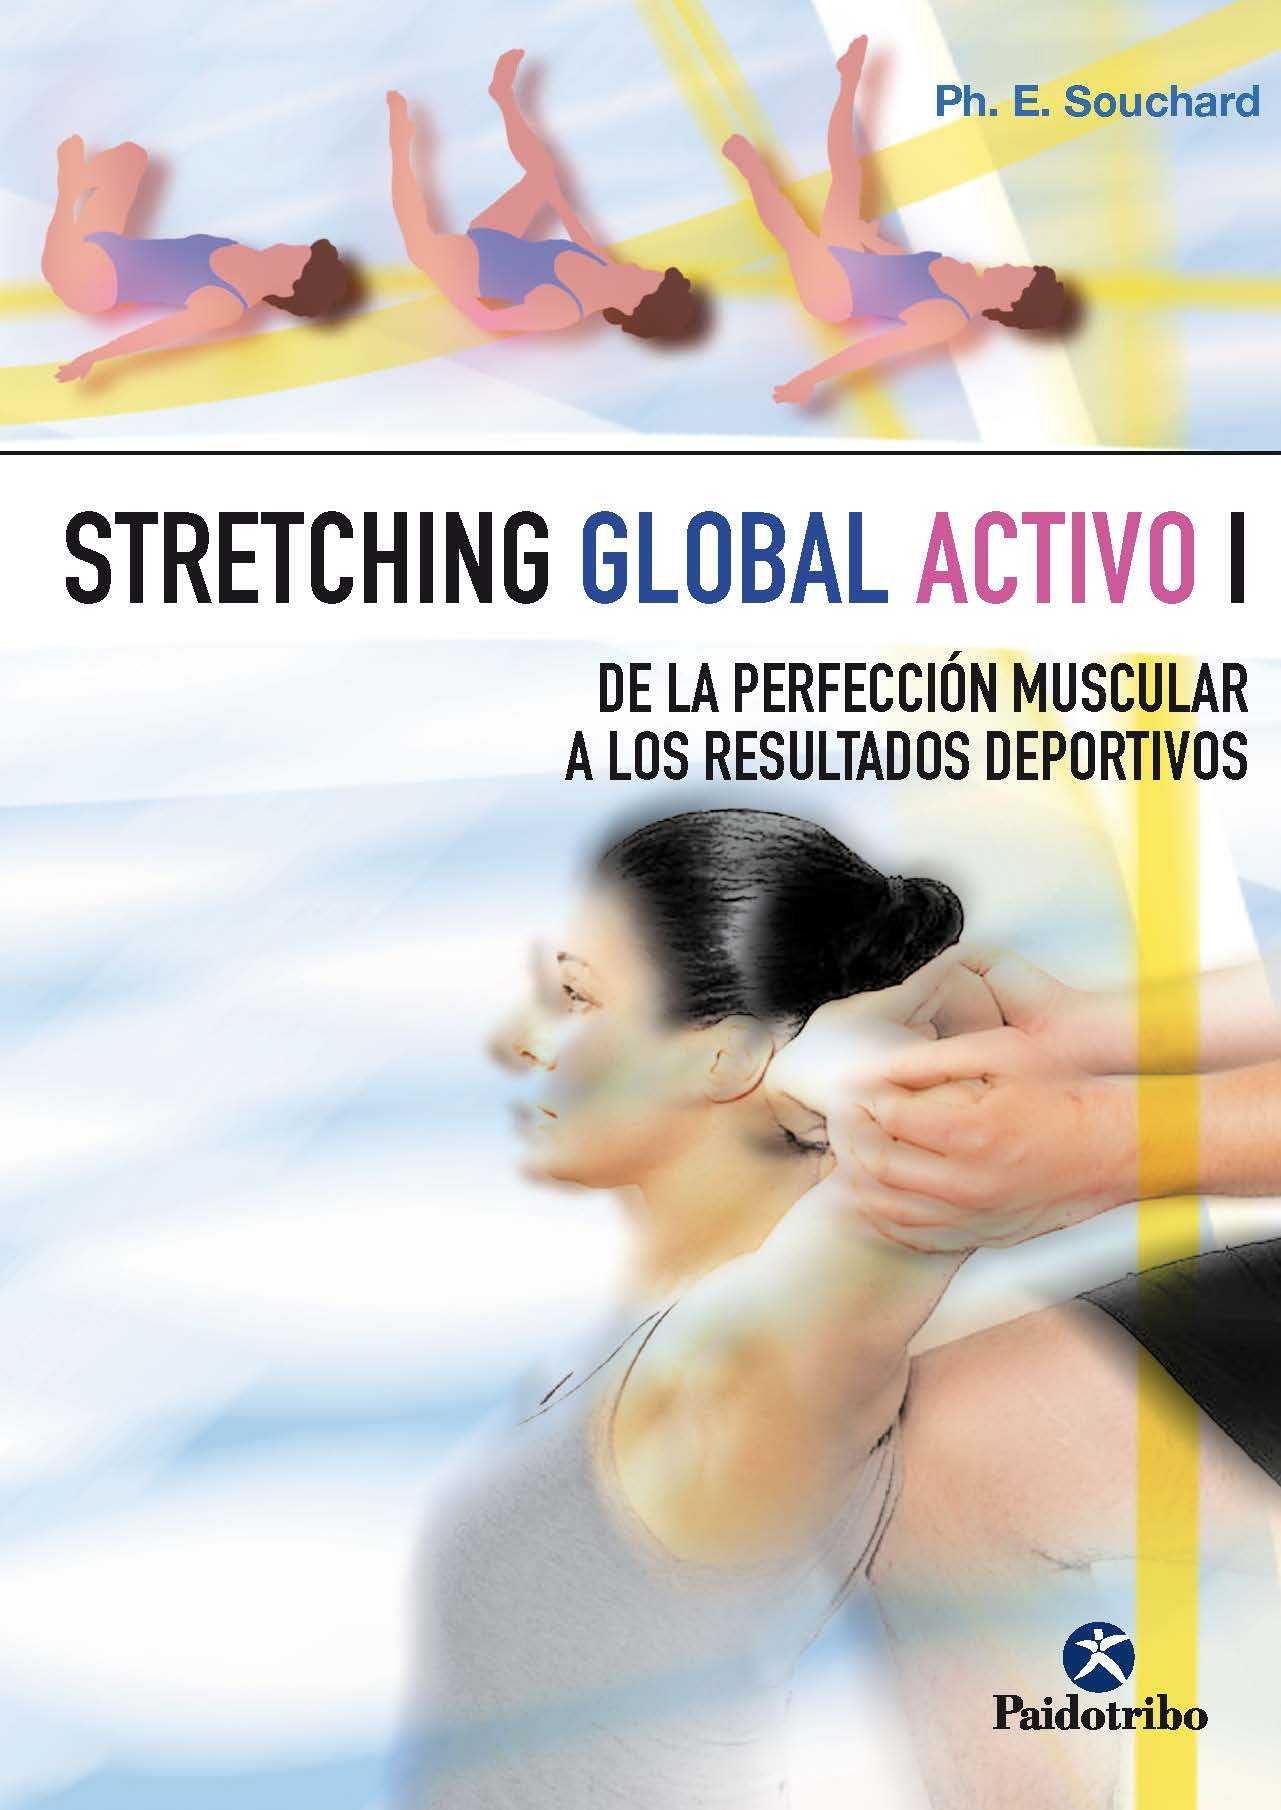 STRETCHING GLOBAL ACTIVO I (DE LA PERFECCION MUSCULAR A LOS RESULTADOS)